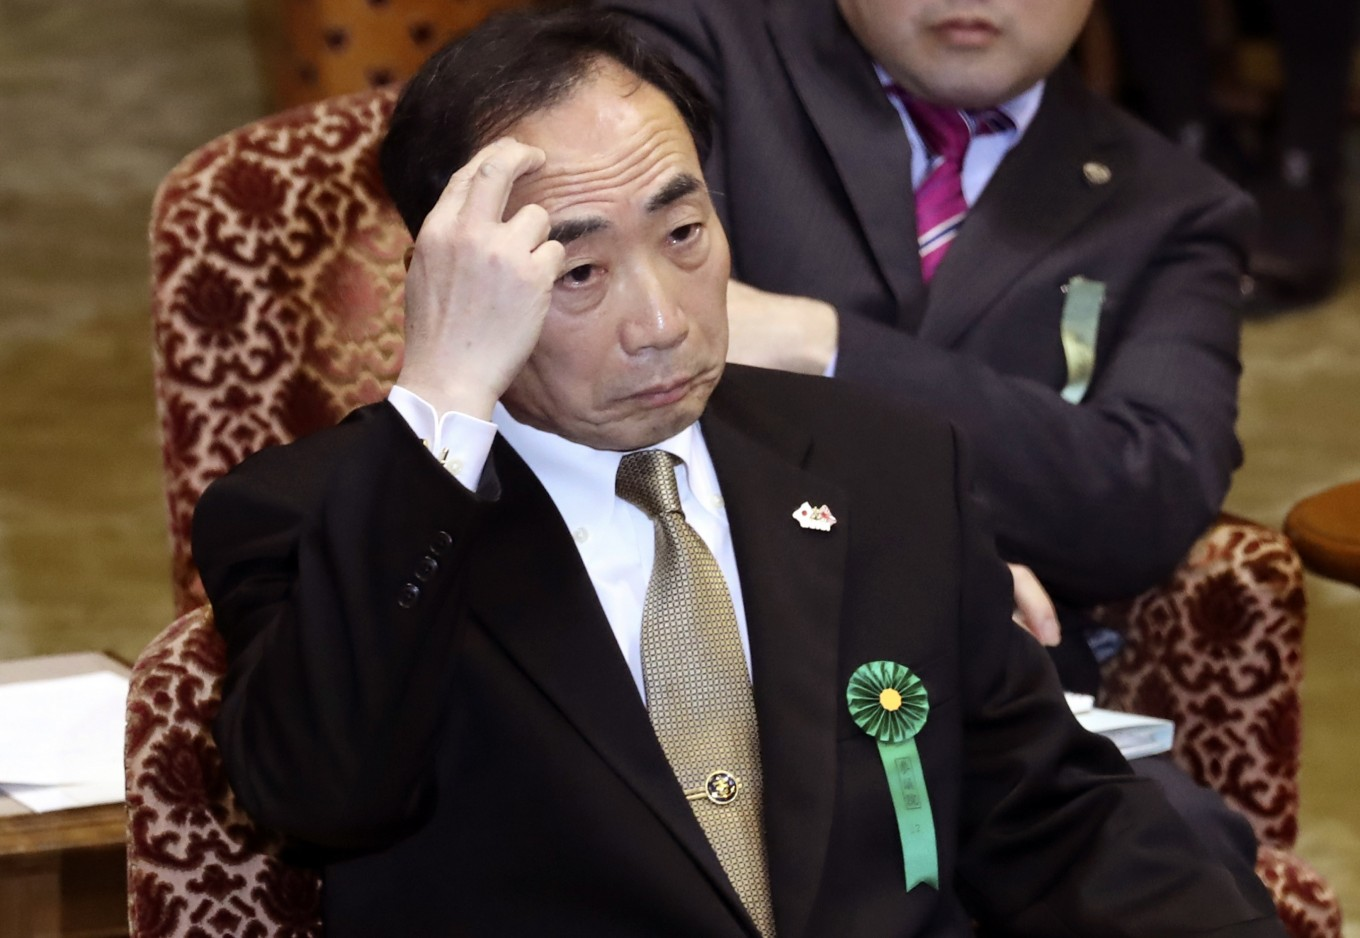 Abe's wife accused of giving envelope of cash in Japan scandal